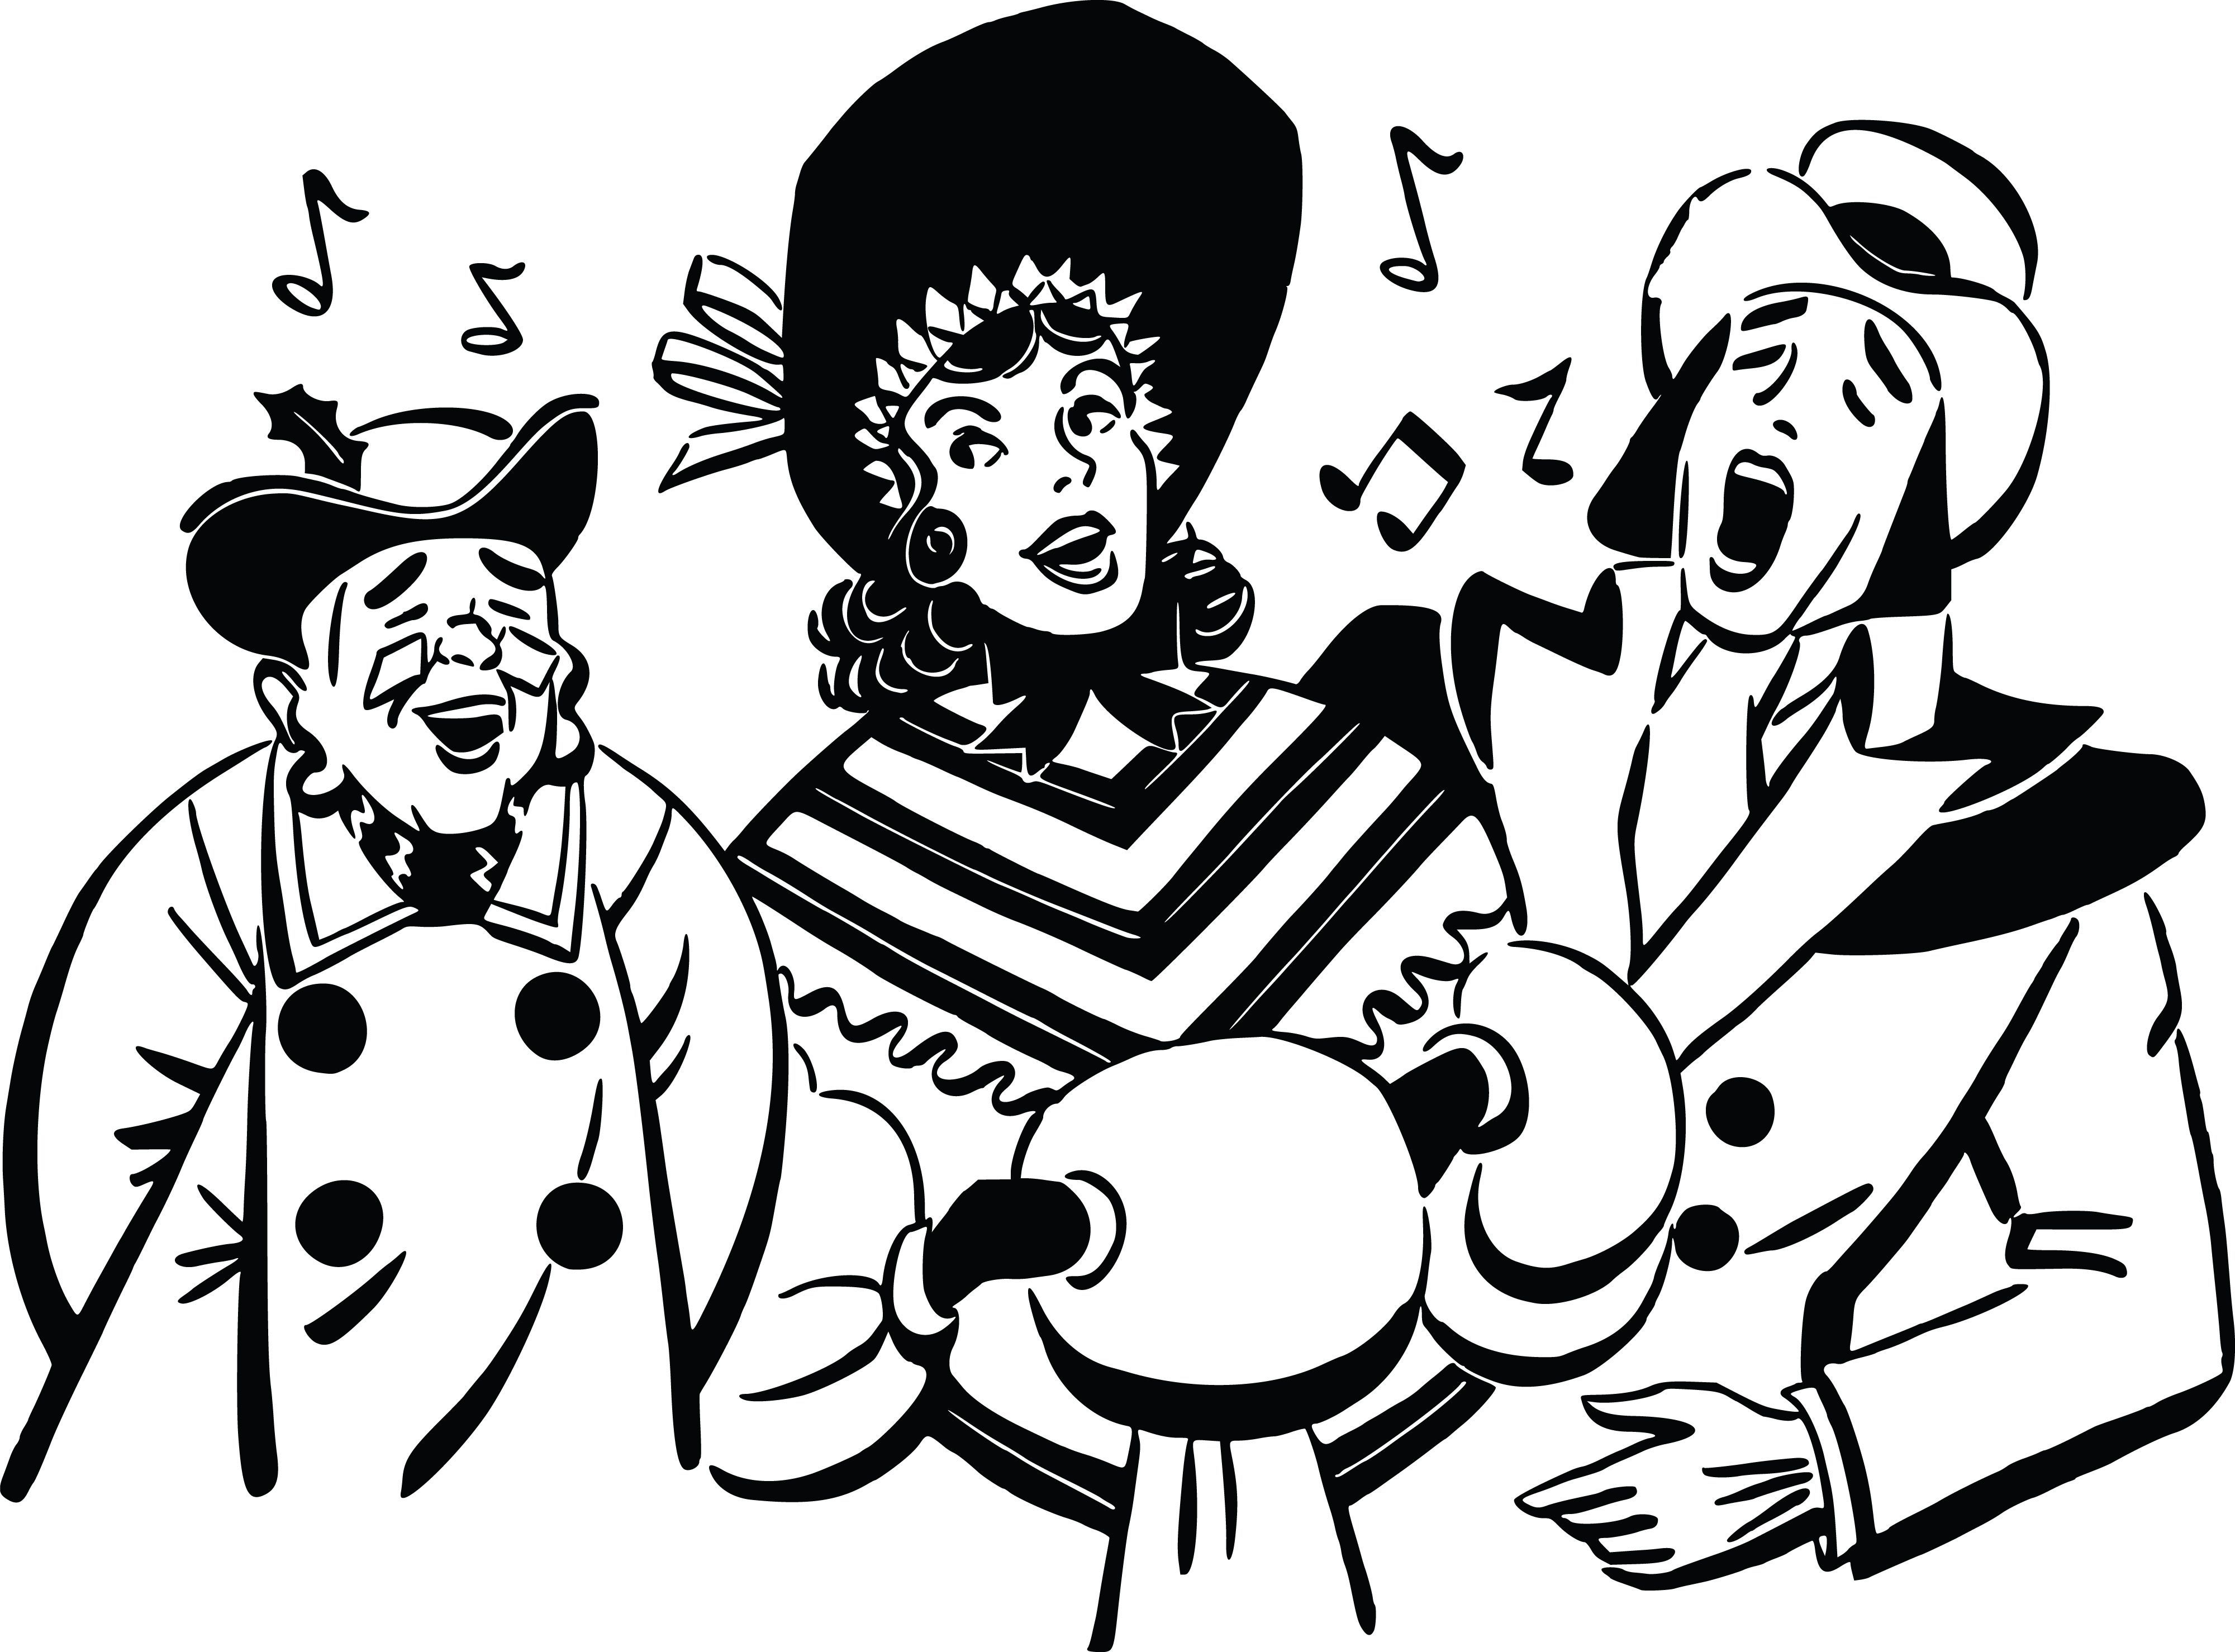 Free Clipart Of A group of christmas carolers.